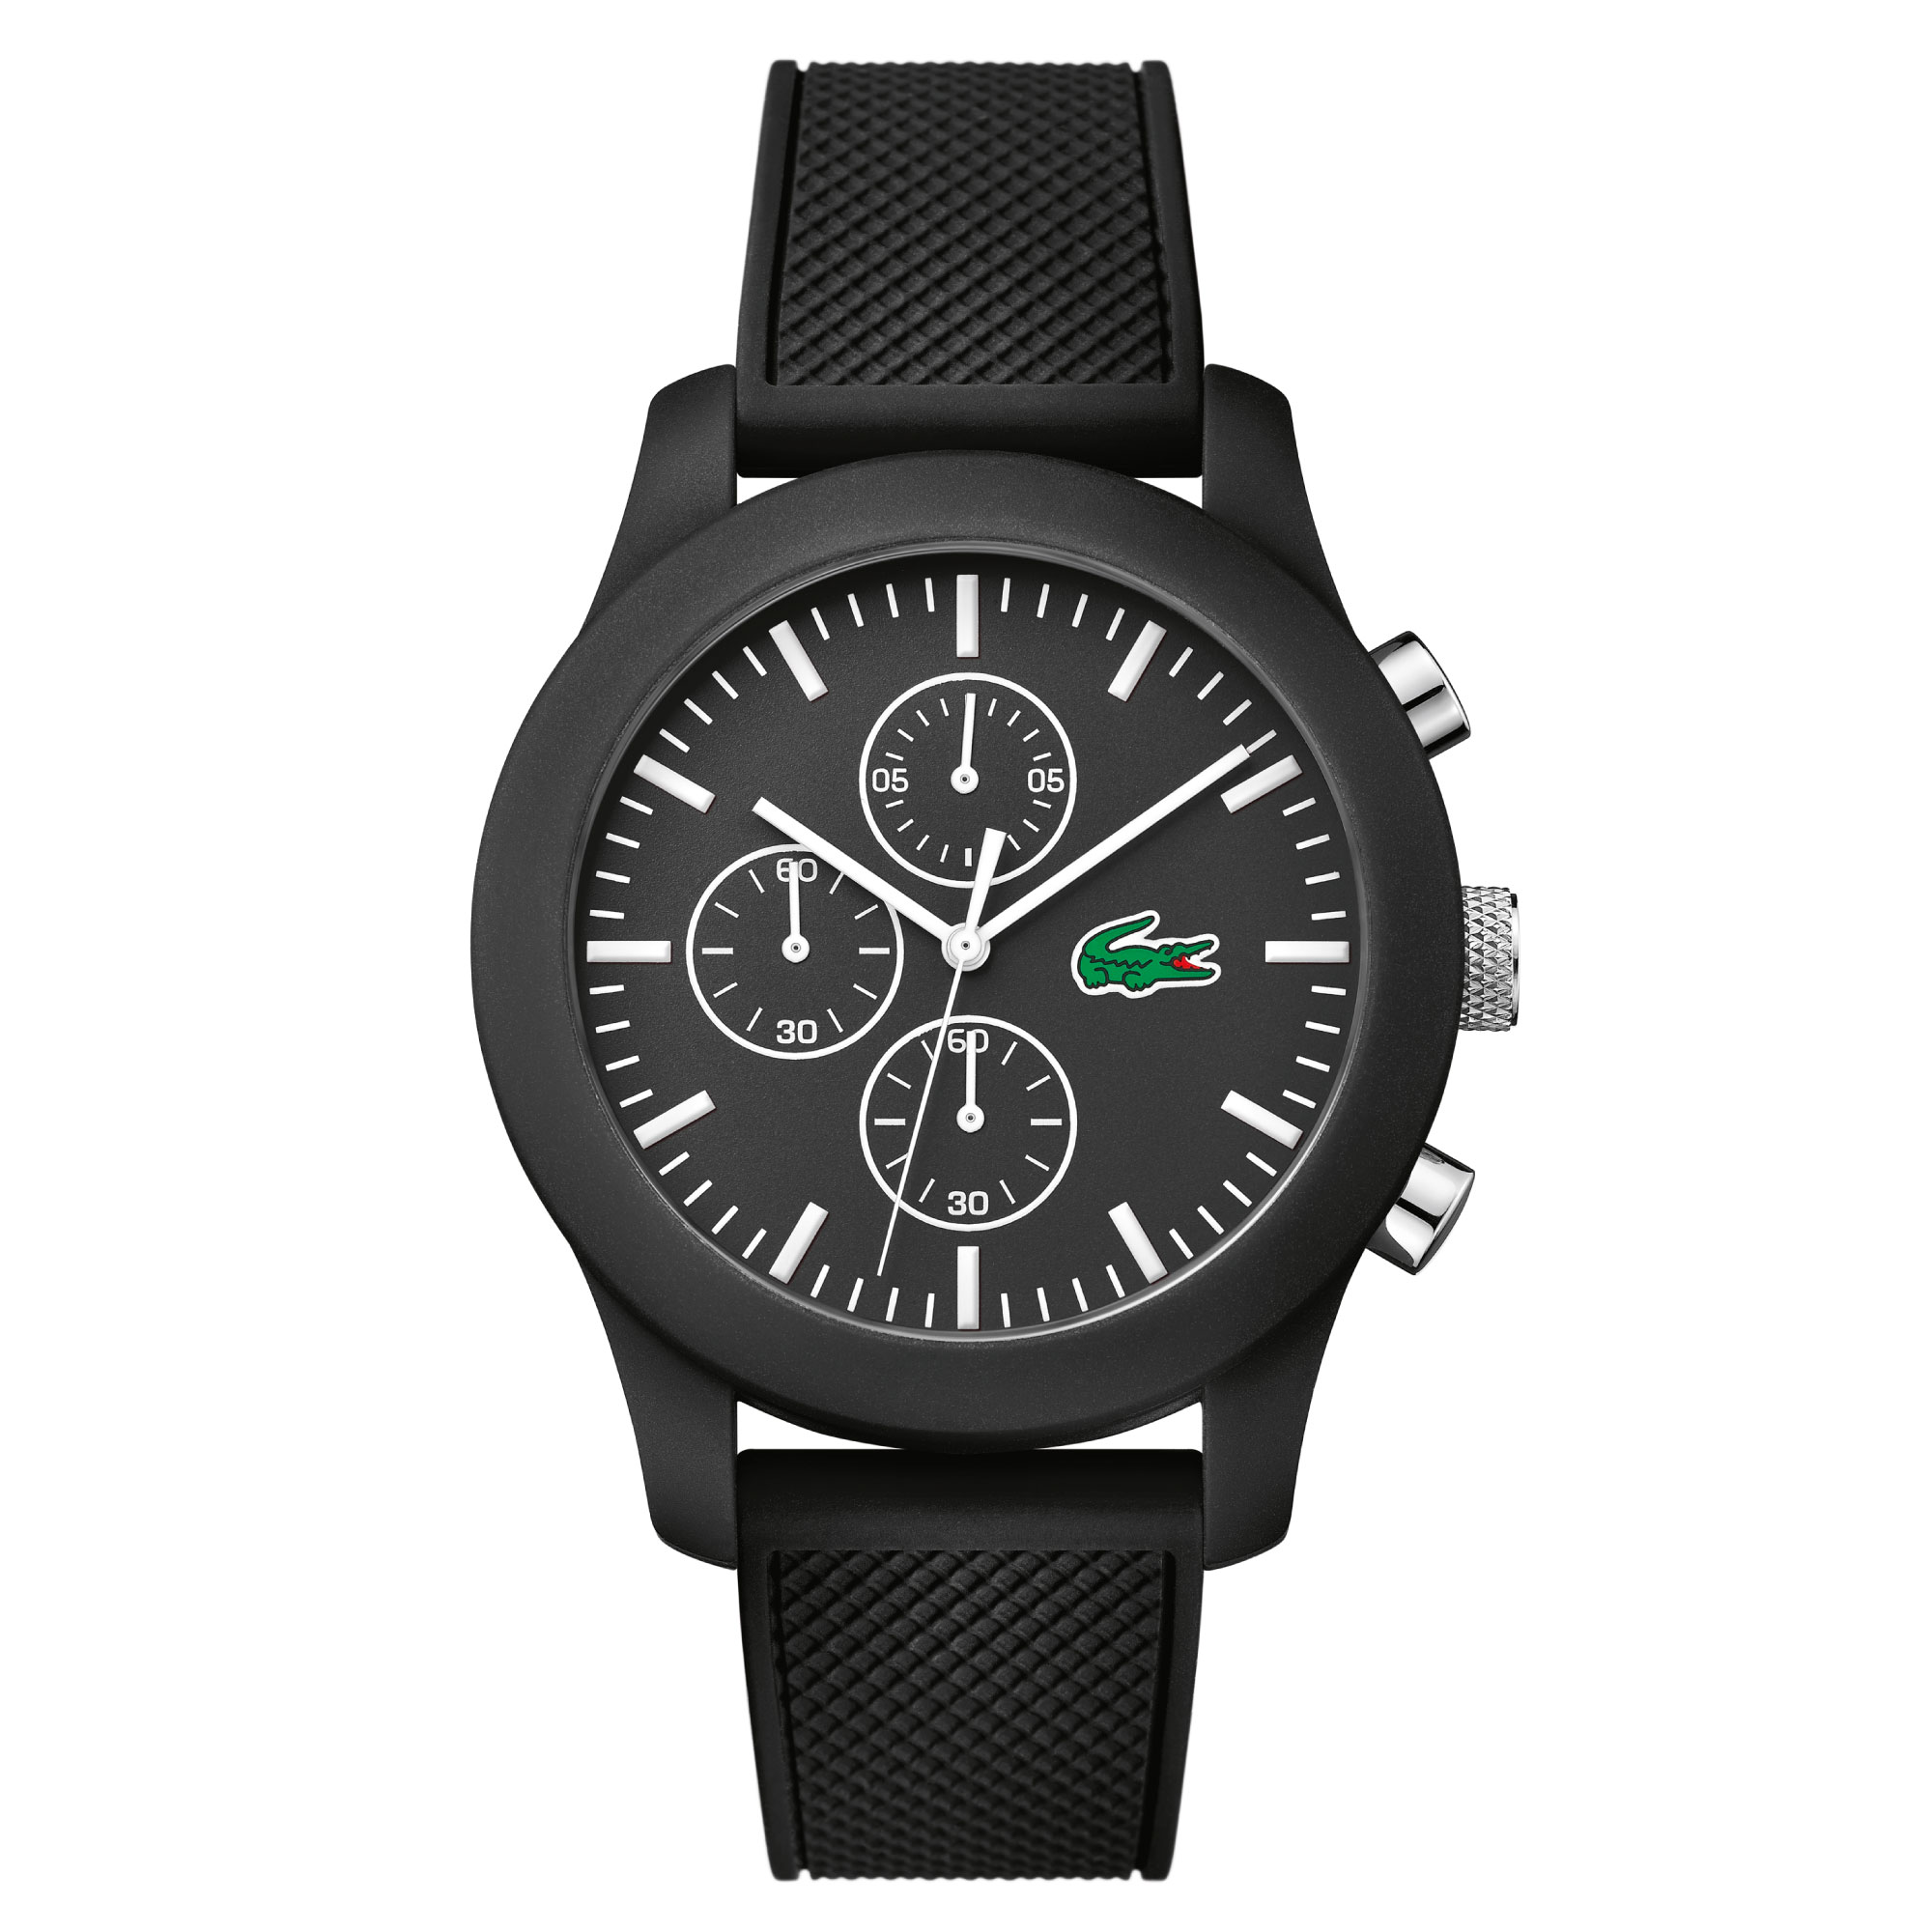 Unisex Lacoste.12.12 Chronograph Black Watch